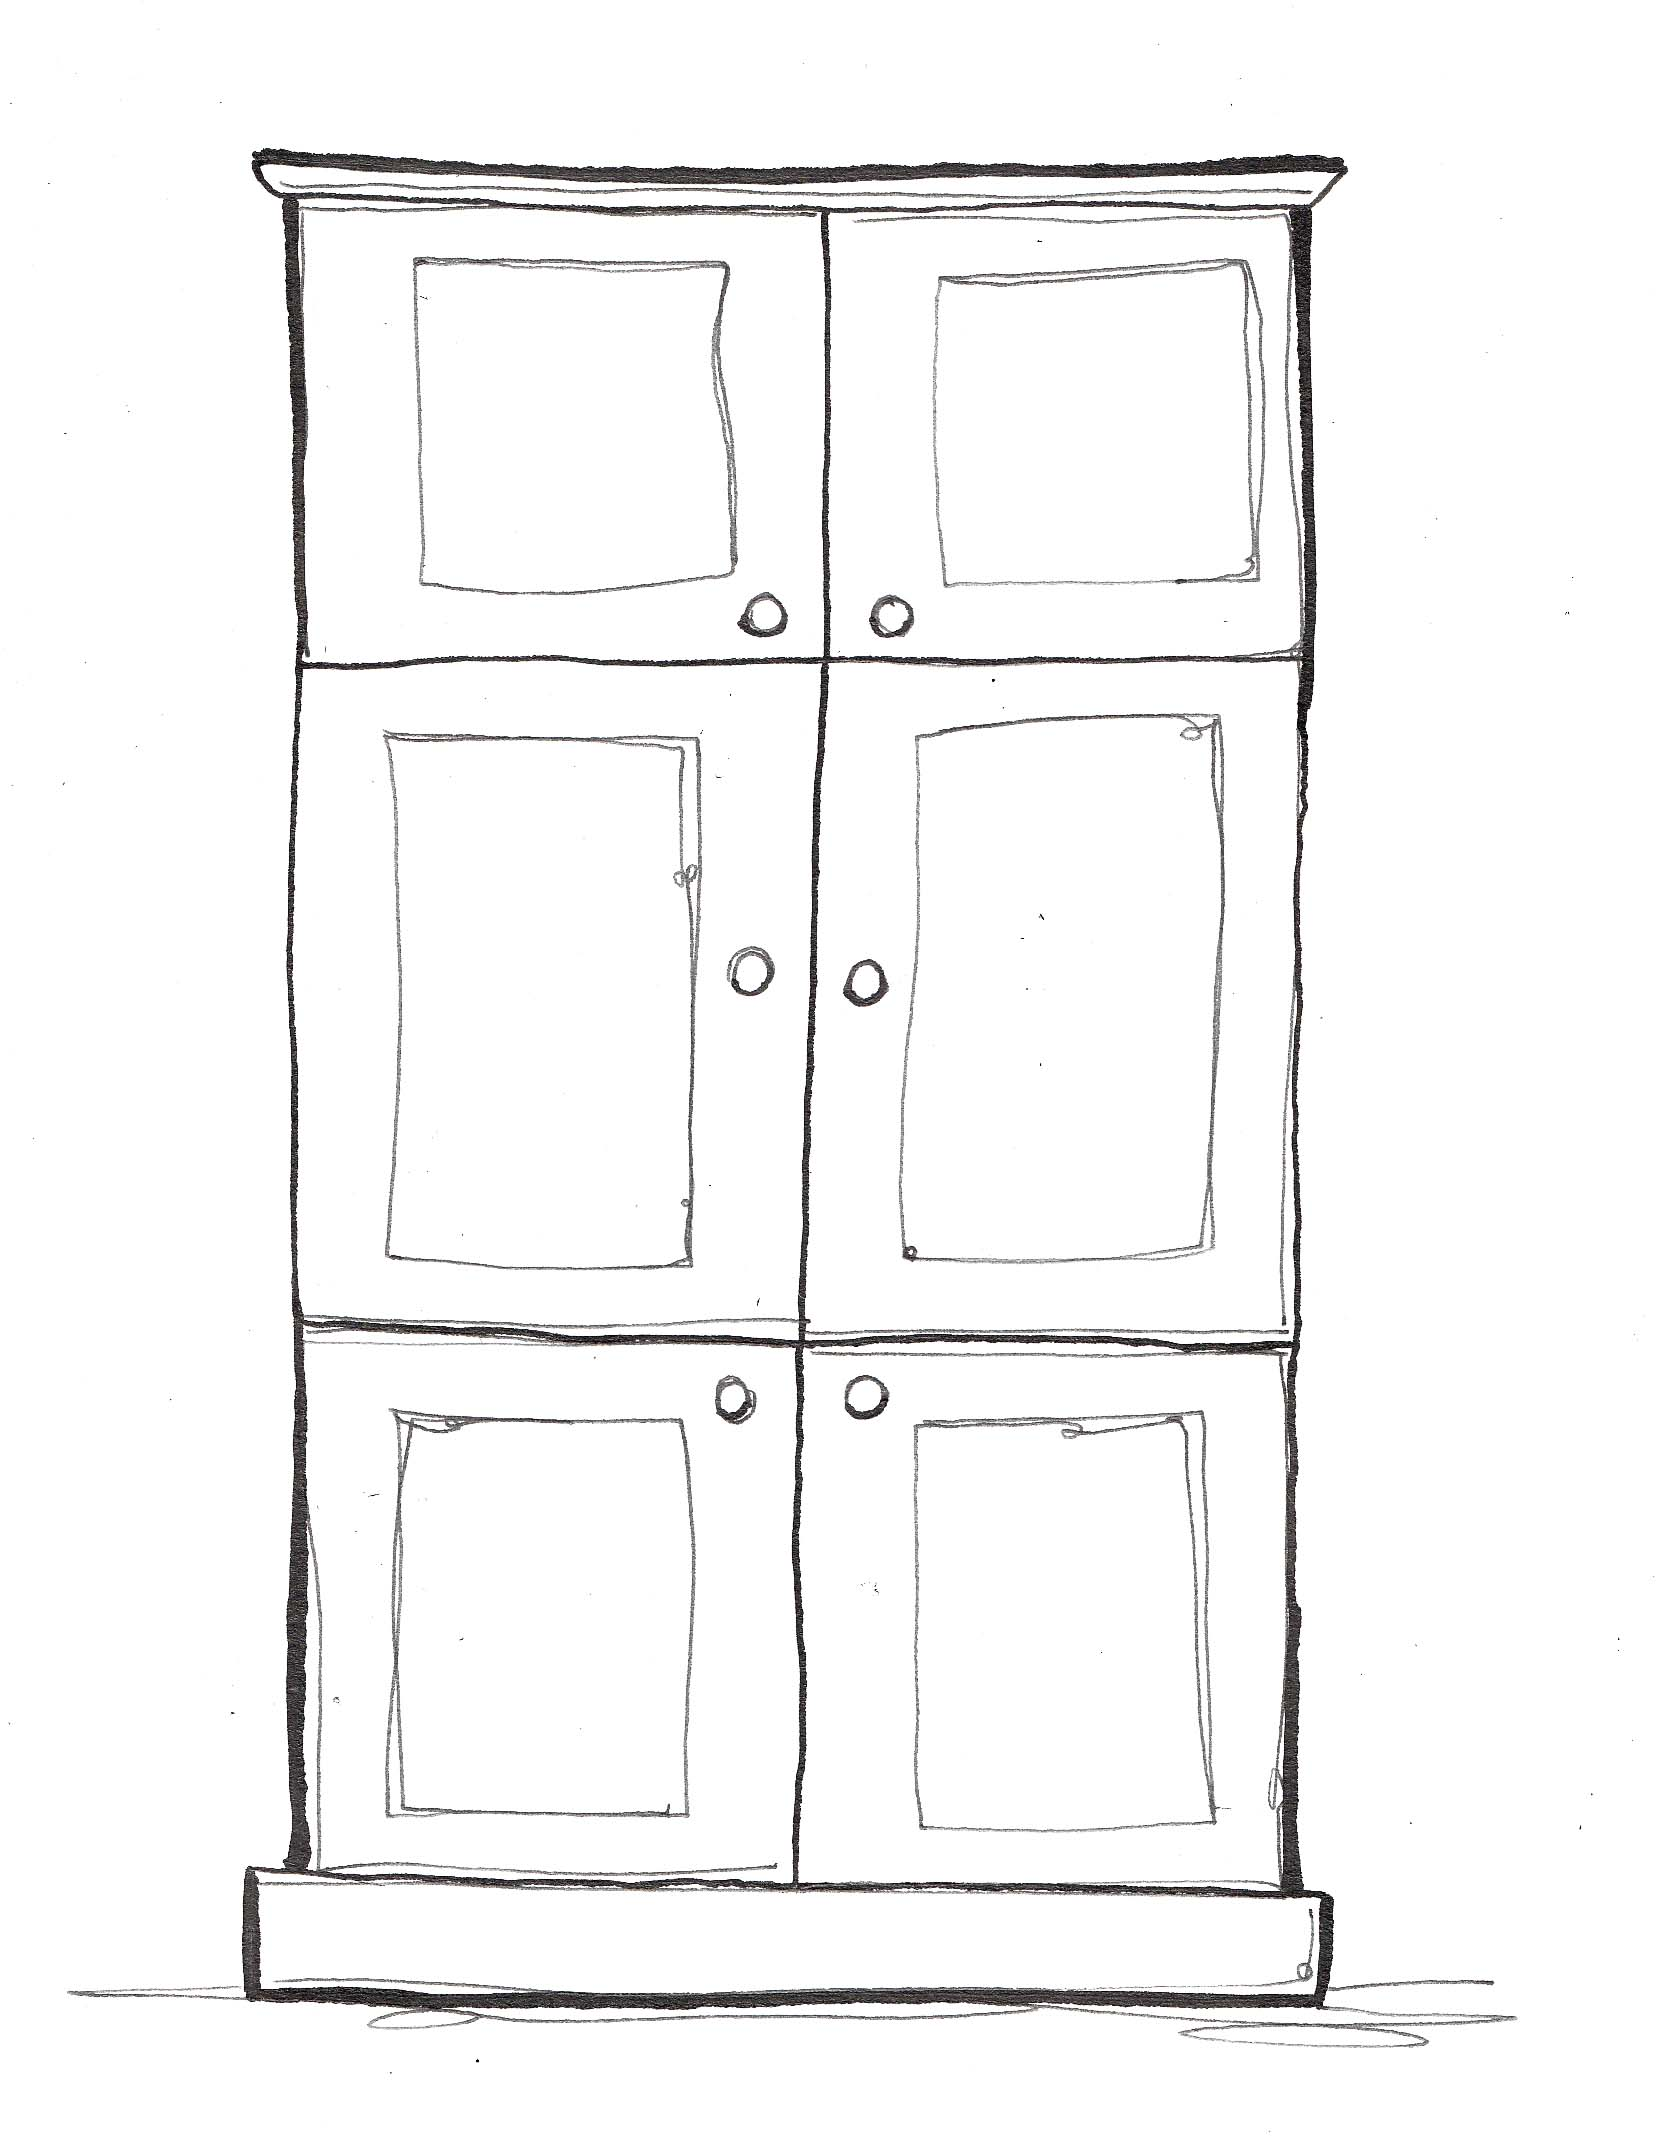 Illustration of a cupboard by Hannah Foley. All rights reserved (www.owlingabout.co.uk).